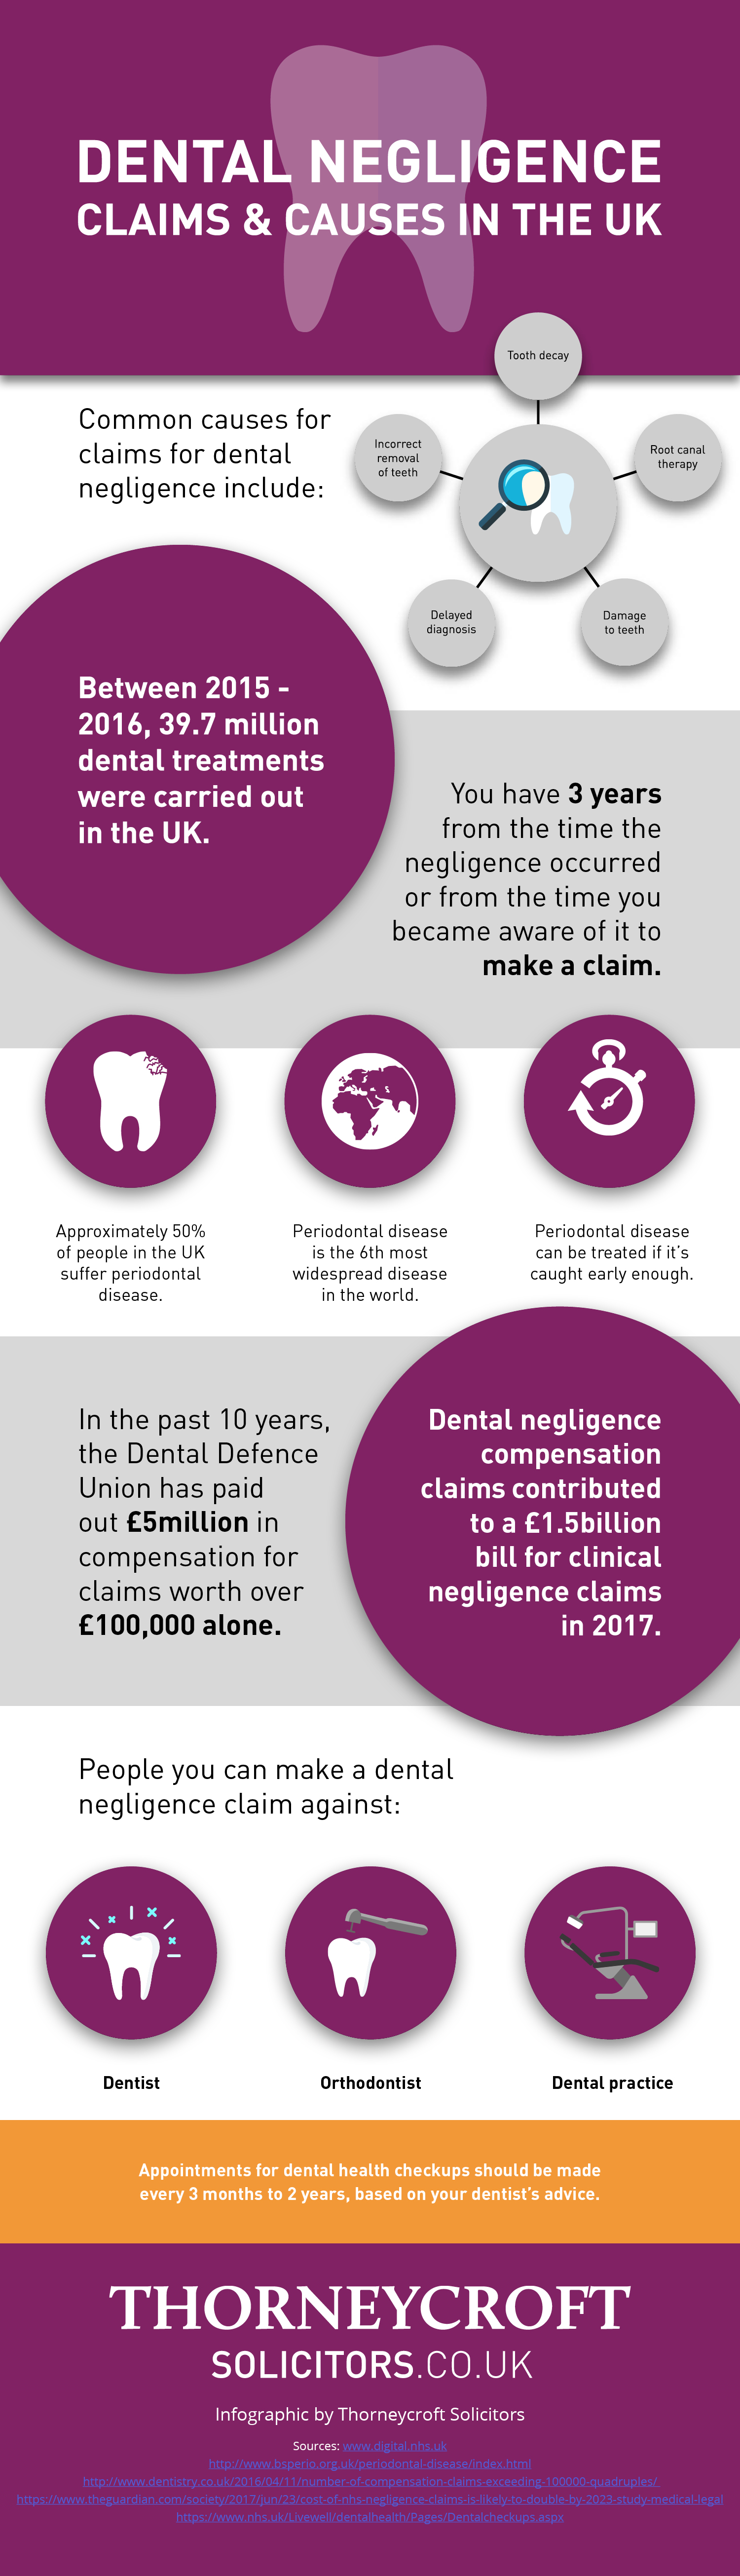 Dental negligence infographic